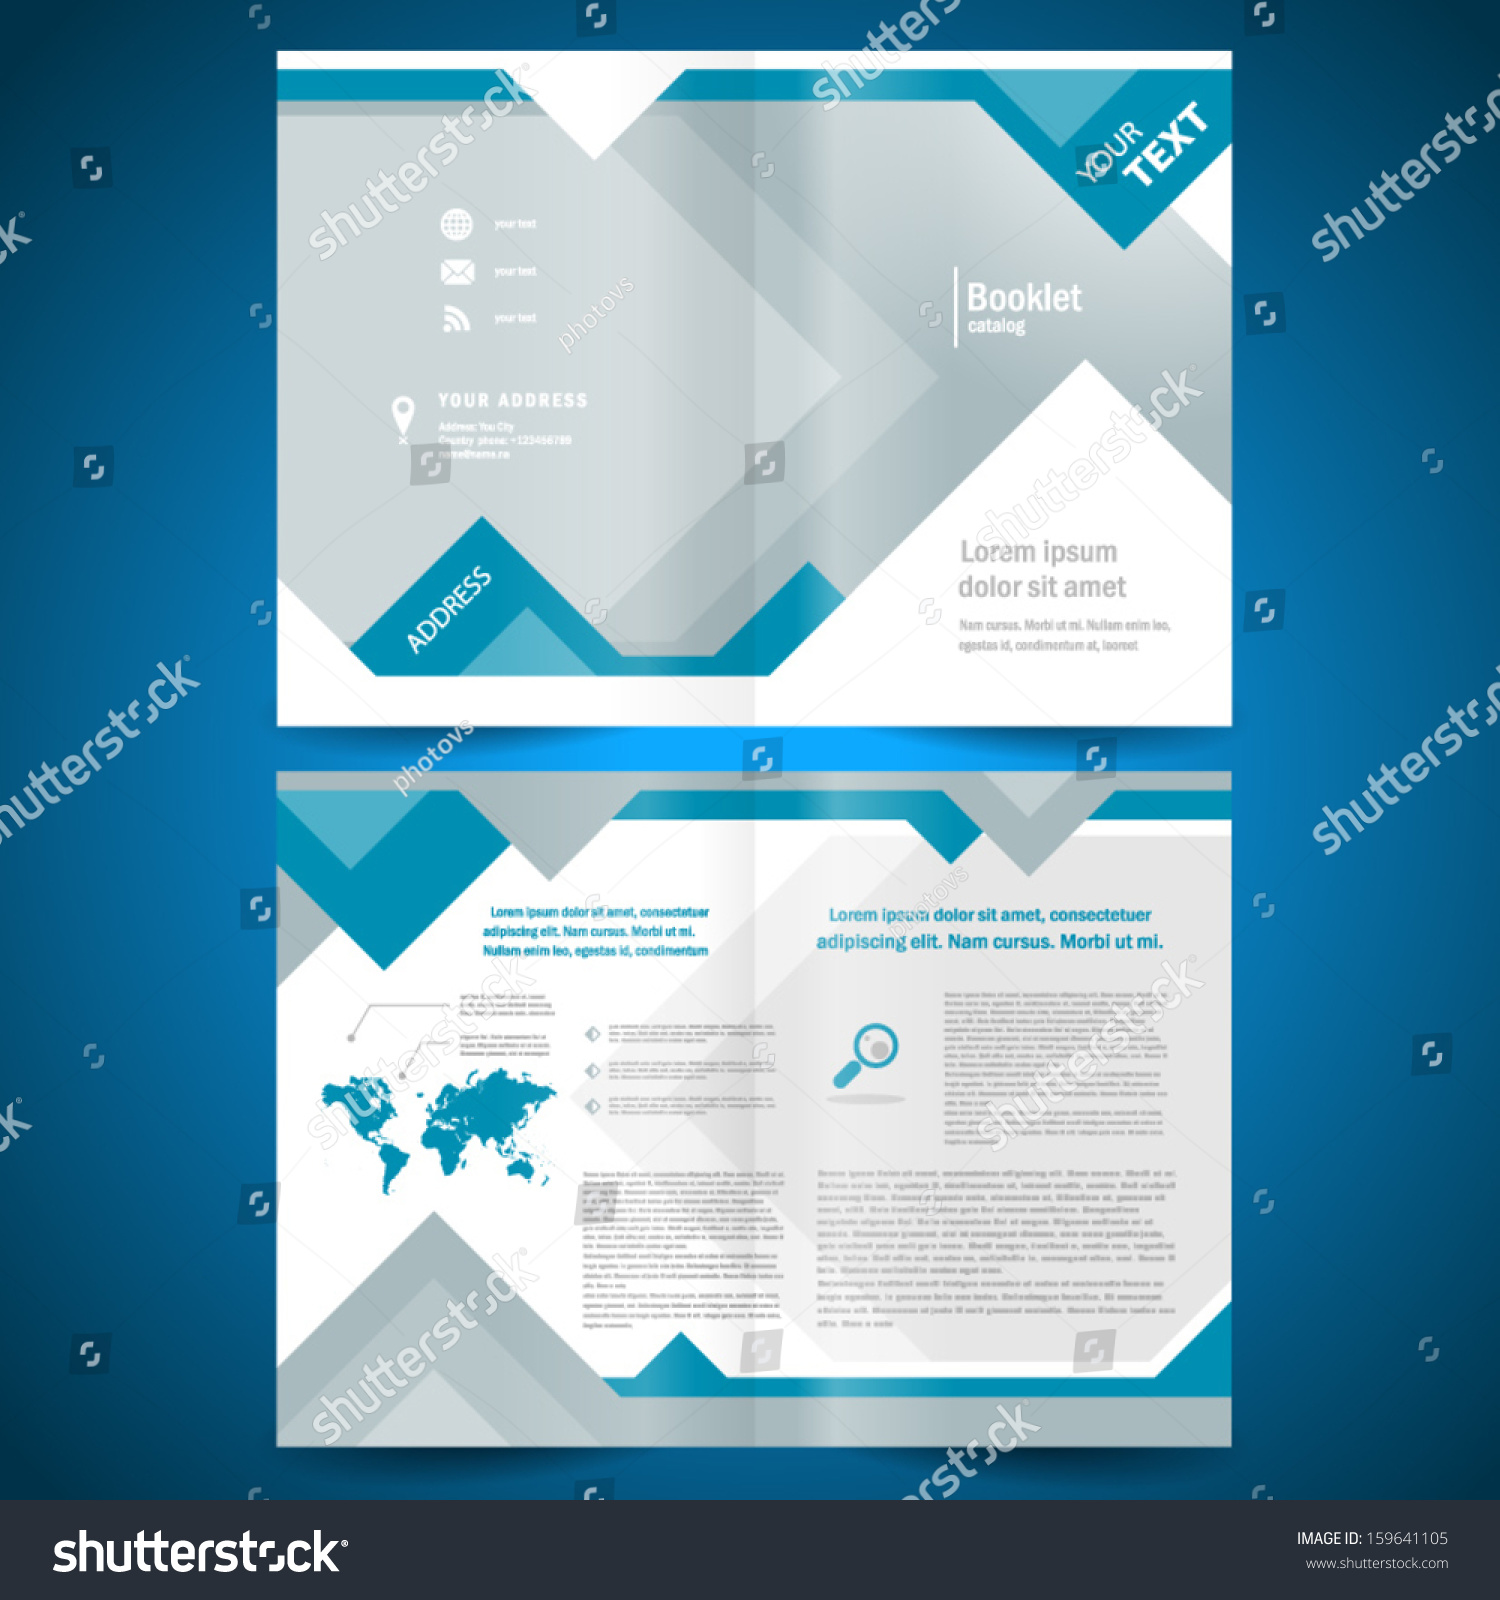 free templates for catalogue design - booklet template design catalog brochure folder stock